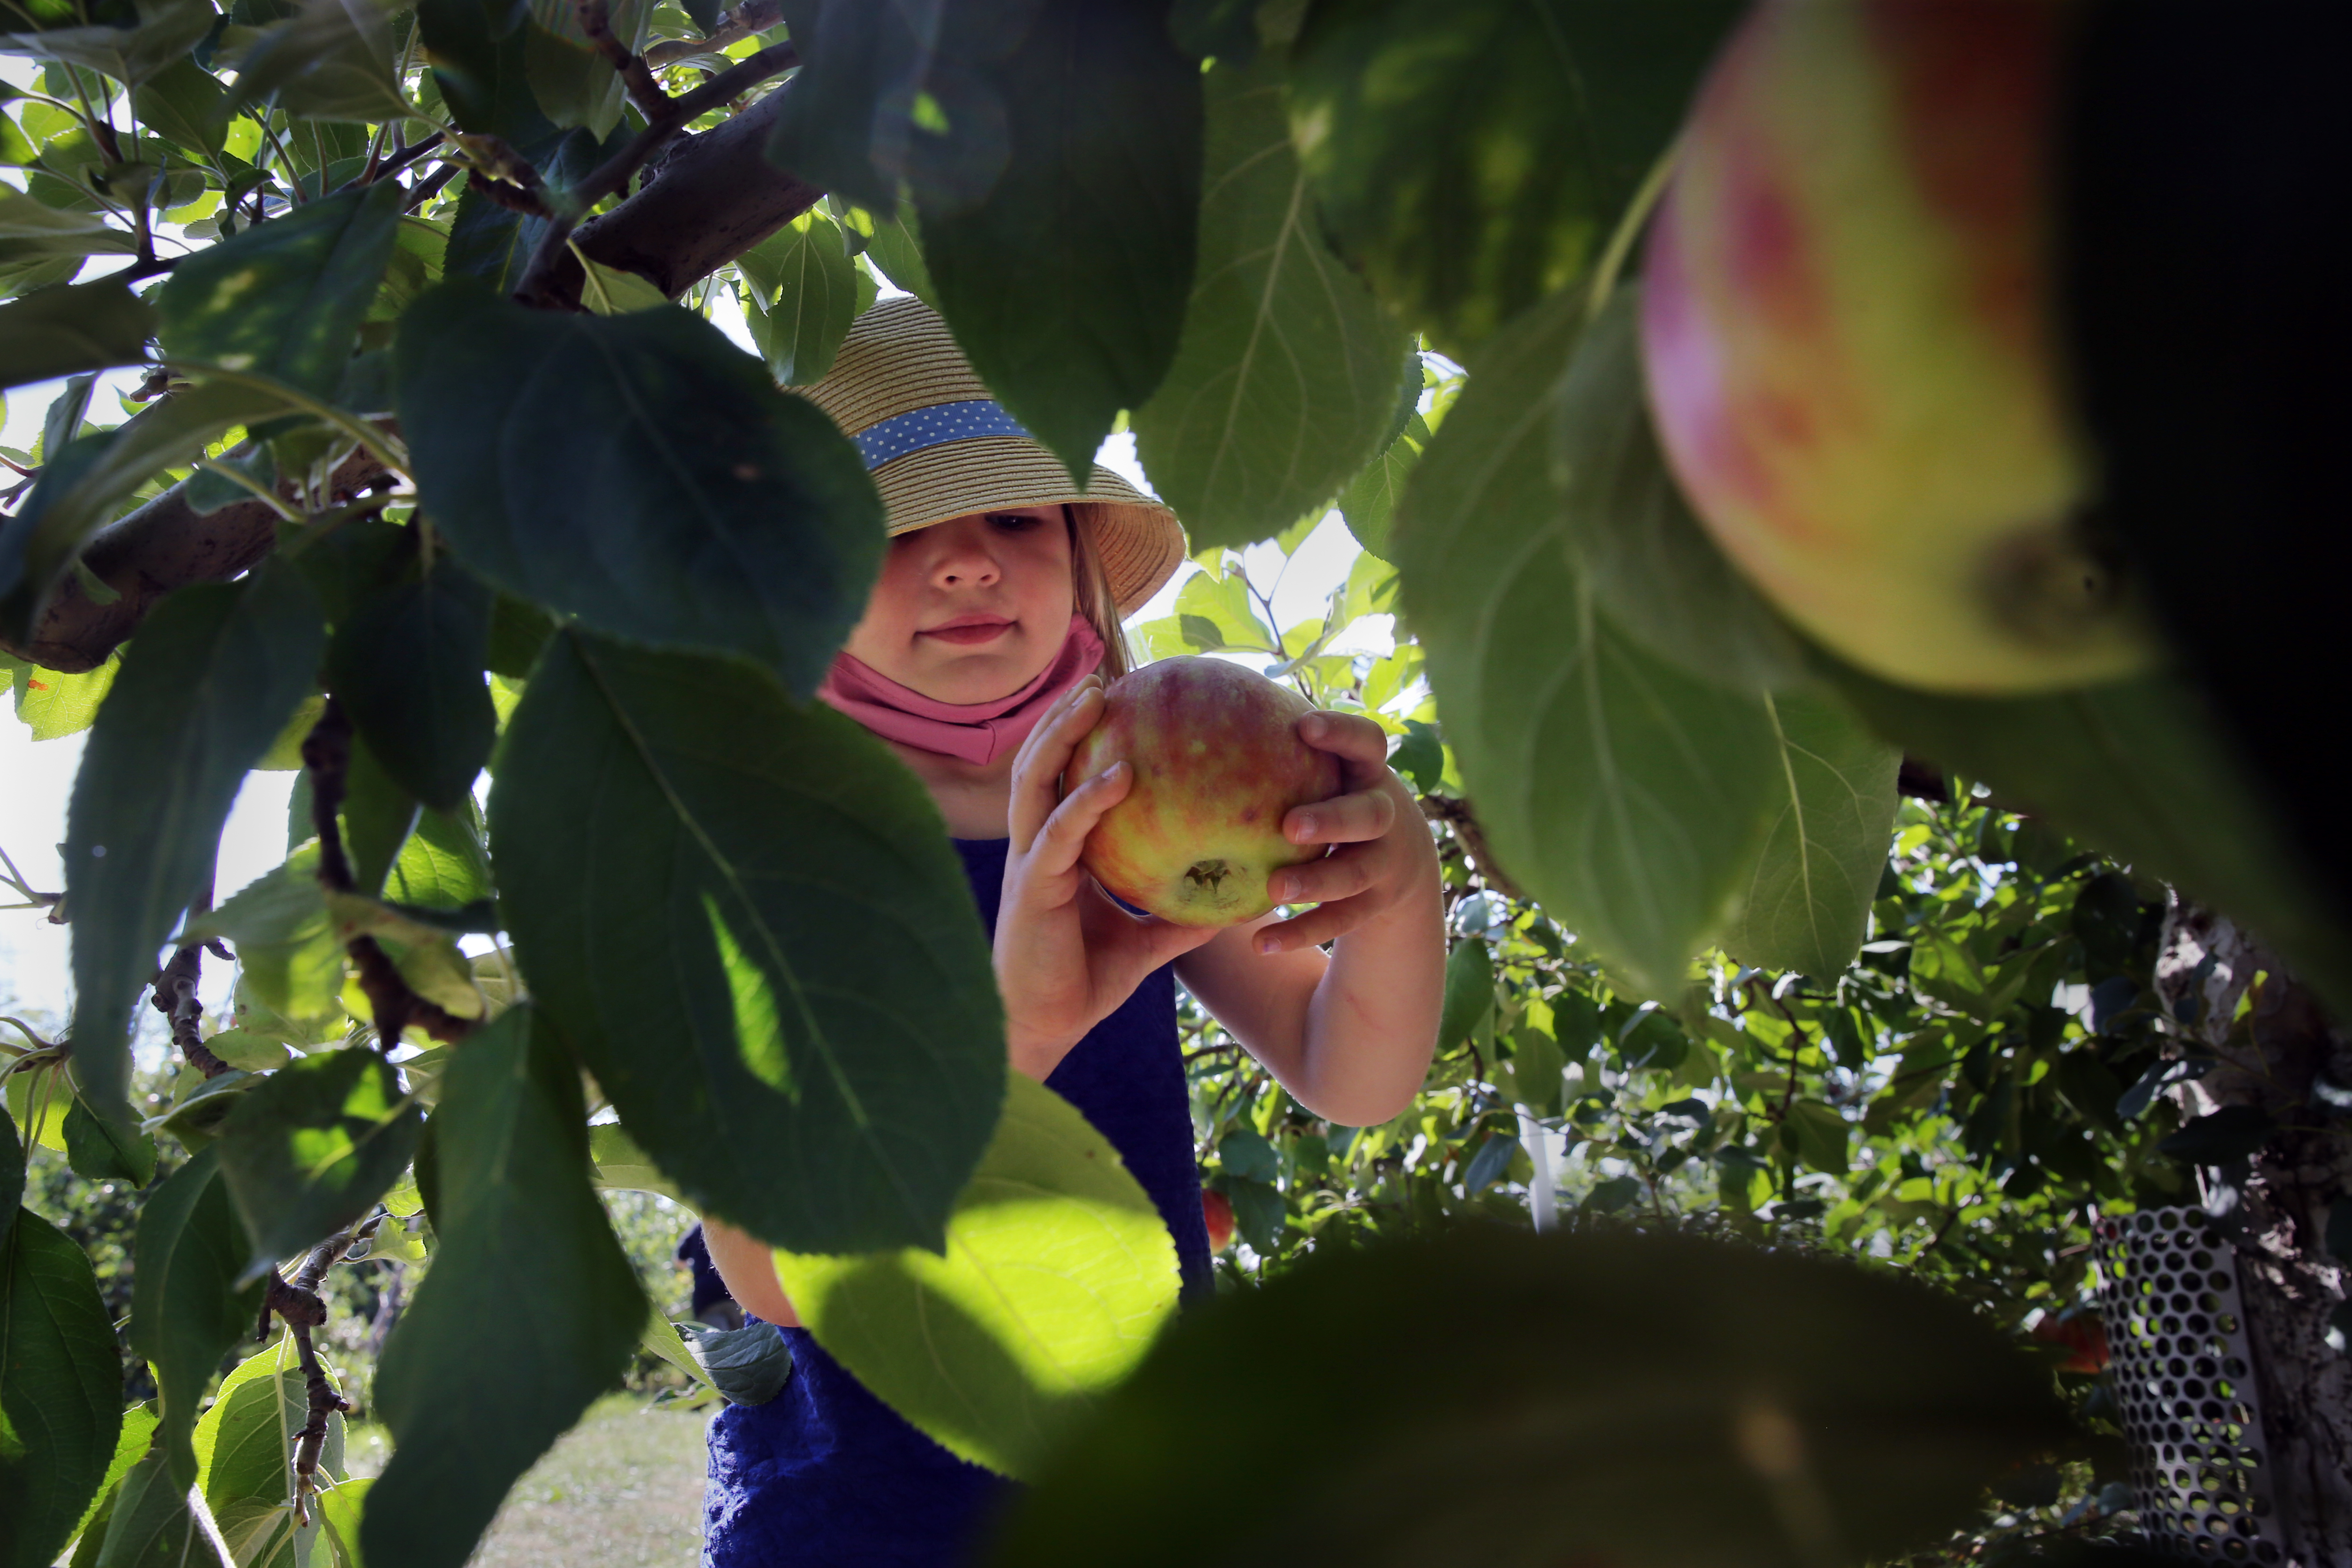 A young child wearing a hat is visible through the leaves of a tree, picking an apple on a sunny day.